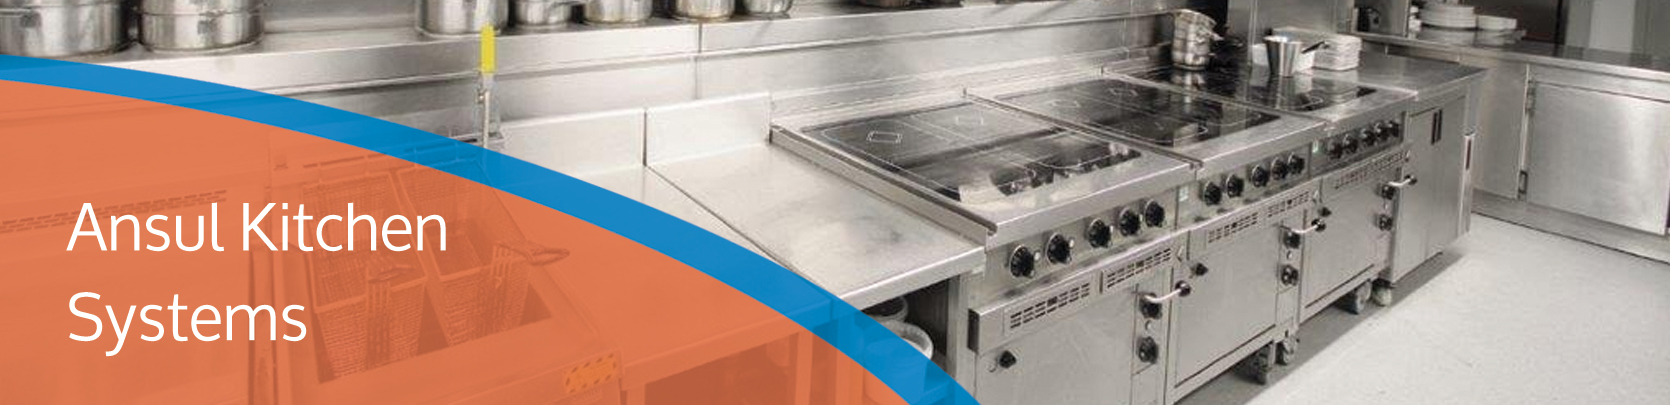 ansul kitchen systems hero image for mi fire protection services